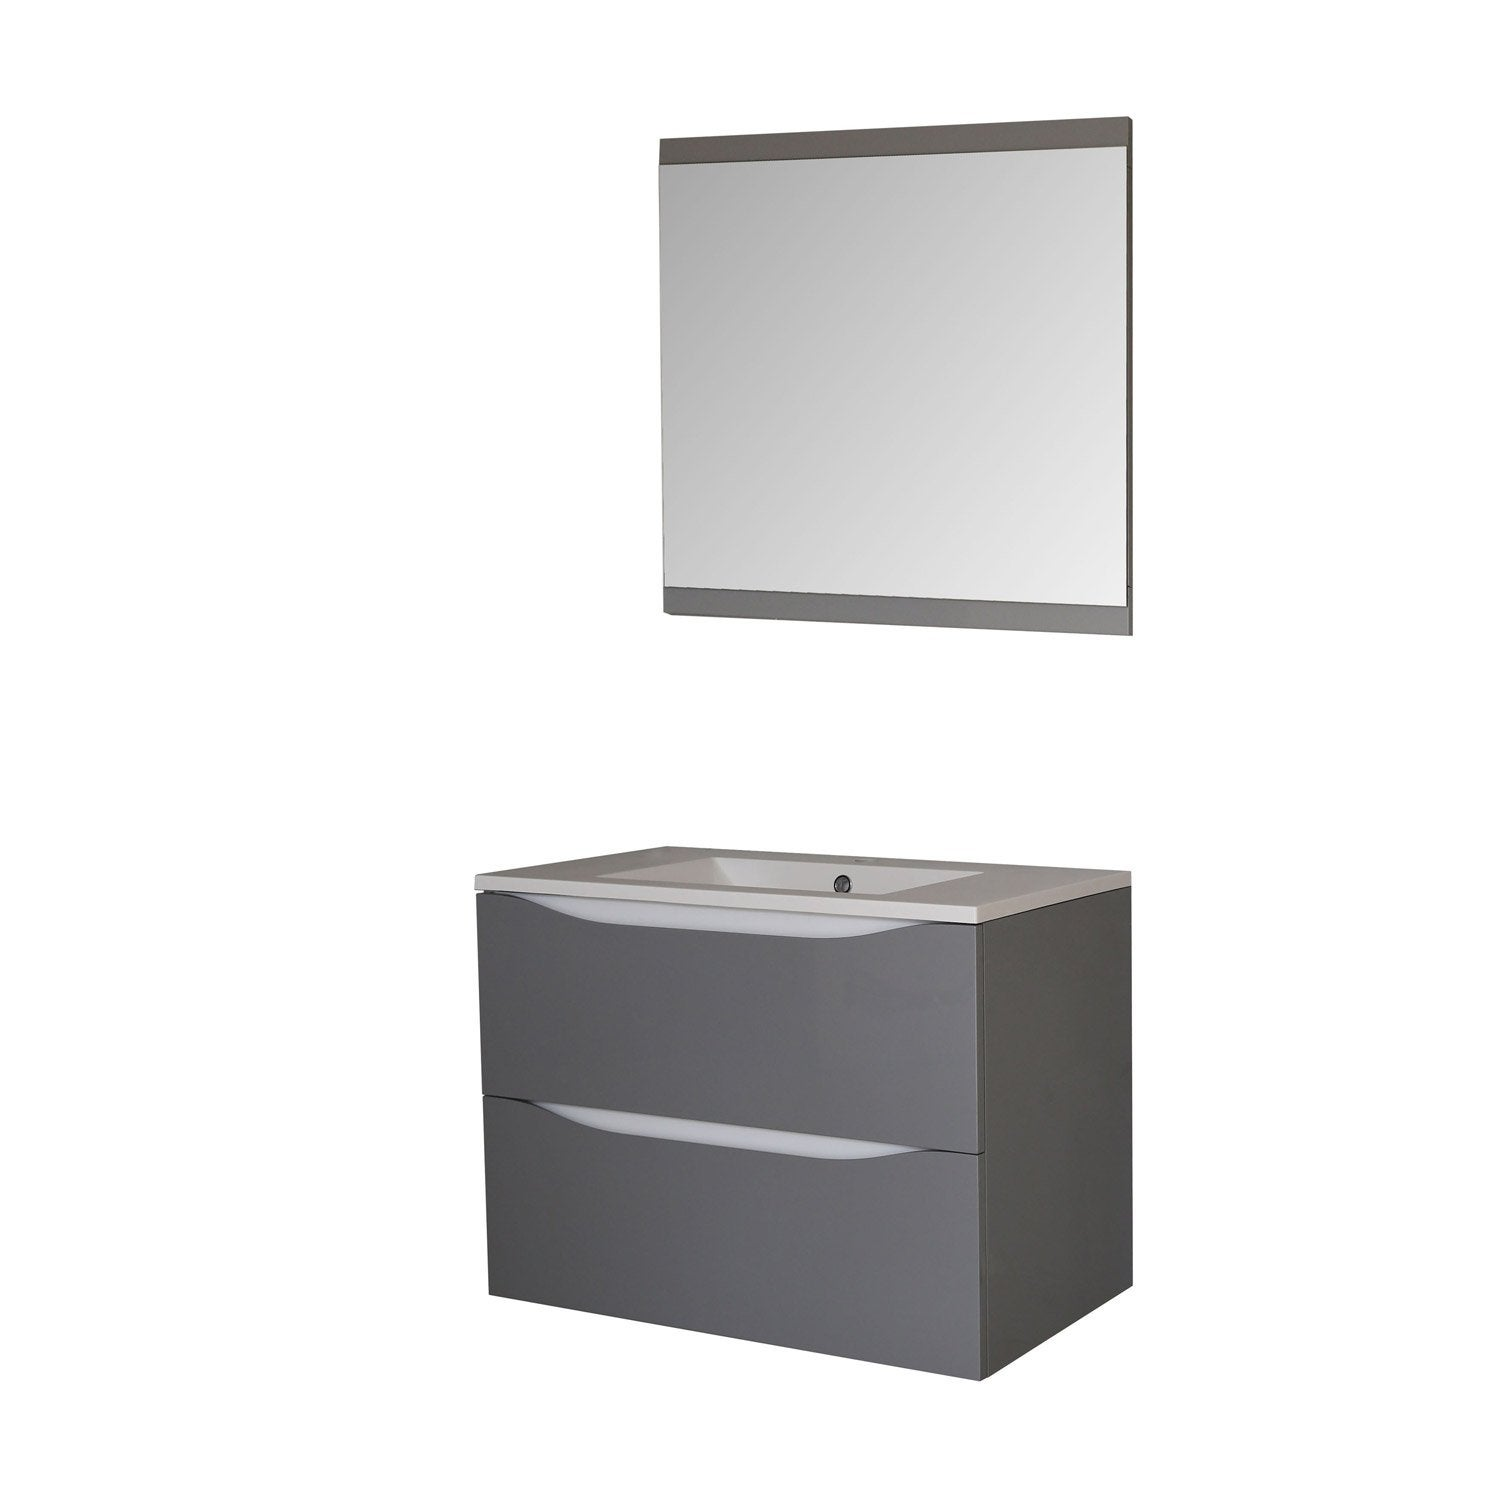 meuble sous vasque miroir x x cm gris smile leroy merlin. Black Bedroom Furniture Sets. Home Design Ideas